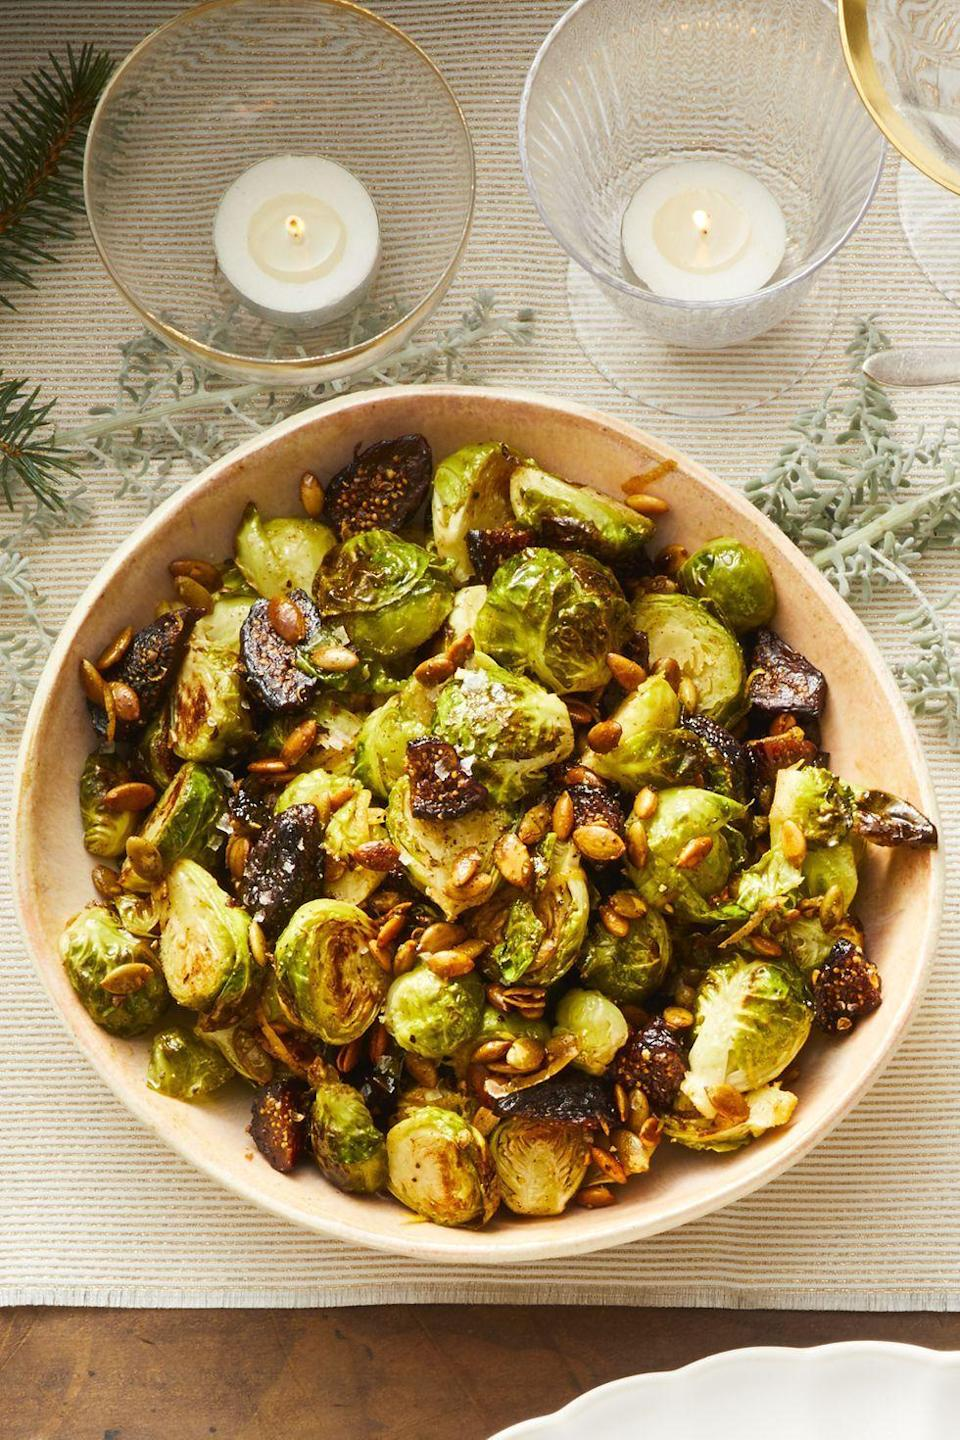 "<p>When it comes to the best fruits to add to your recipes, figs are probably the most underrated of the bunch. Not only are these sweet fall fruits delicious, they're also incredibly versatile, adding great flavor to anything from a fresh <a href=""https://www.goodhousekeeping.com/food-recipes/easy/g28006549/easy-fall-salads/"" rel=""nofollow noopener"" target=""_blank"" data-ylk=""slk:fall salad"" class=""link rapid-noclick-resp"">fall salad</a> to a tasty <a href=""https://www.goodhousekeeping.com/food-recipes/easy/g122/easy-appetizers/"" rel=""nofollow noopener"" target=""_blank"" data-ylk=""slk:appetizer dish"" class=""link rapid-noclick-resp"">appetizer dish</a> — not to mention they're simply amazing in jams, pastries and desserts! If you need more ideas on how to incorporate these juicy, flavor-packed bites into your meals, though, we've rounded up some of the best fig recipes here, so you can easily make the most out of these luscious fall fruits when they're in season. </p><p>Not sure which recipe to try out first? We've got everything from delicious mains and <a href=""https://www.goodhousekeeping.com/food-recipes/healthy/g721/healthy-side-dishes/"" rel=""nofollow noopener"" target=""_blank"" data-ylk=""slk:healthy sides"" class=""link rapid-noclick-resp"">healthy sides</a> to creative salads, snacks, and <a href=""https://www.google.com/search?q=site:www.goodhousekeeping.com+finger+food"" rel=""nofollow noopener"" target=""_blank"" data-ylk=""slk:finger foods"" class=""link rapid-noclick-resp"">finger foods</a> (and don't worry, we didn't forget the essential <a href=""https://www.goodhousekeeping.com/food-recipes/dessert/g28089407/easy-fall-desserts/"" rel=""nofollow noopener"" target=""_blank"" data-ylk=""slk:easy fall dessert recipes"" class=""link rapid-noclick-resp"">easy fall dessert recipes</a>, either!). Whether you're enjoying them for breakfast, lunch or dinner, these mouthwatering dishes pair figs together with some of the best flavors of the season, like prosciutto, gorgonzola and even cream cheese and gingersnaps. No matter which of these scrumptious dishes you try, you'll definitely be calling figs your new favorite fruit in no time! </p>"